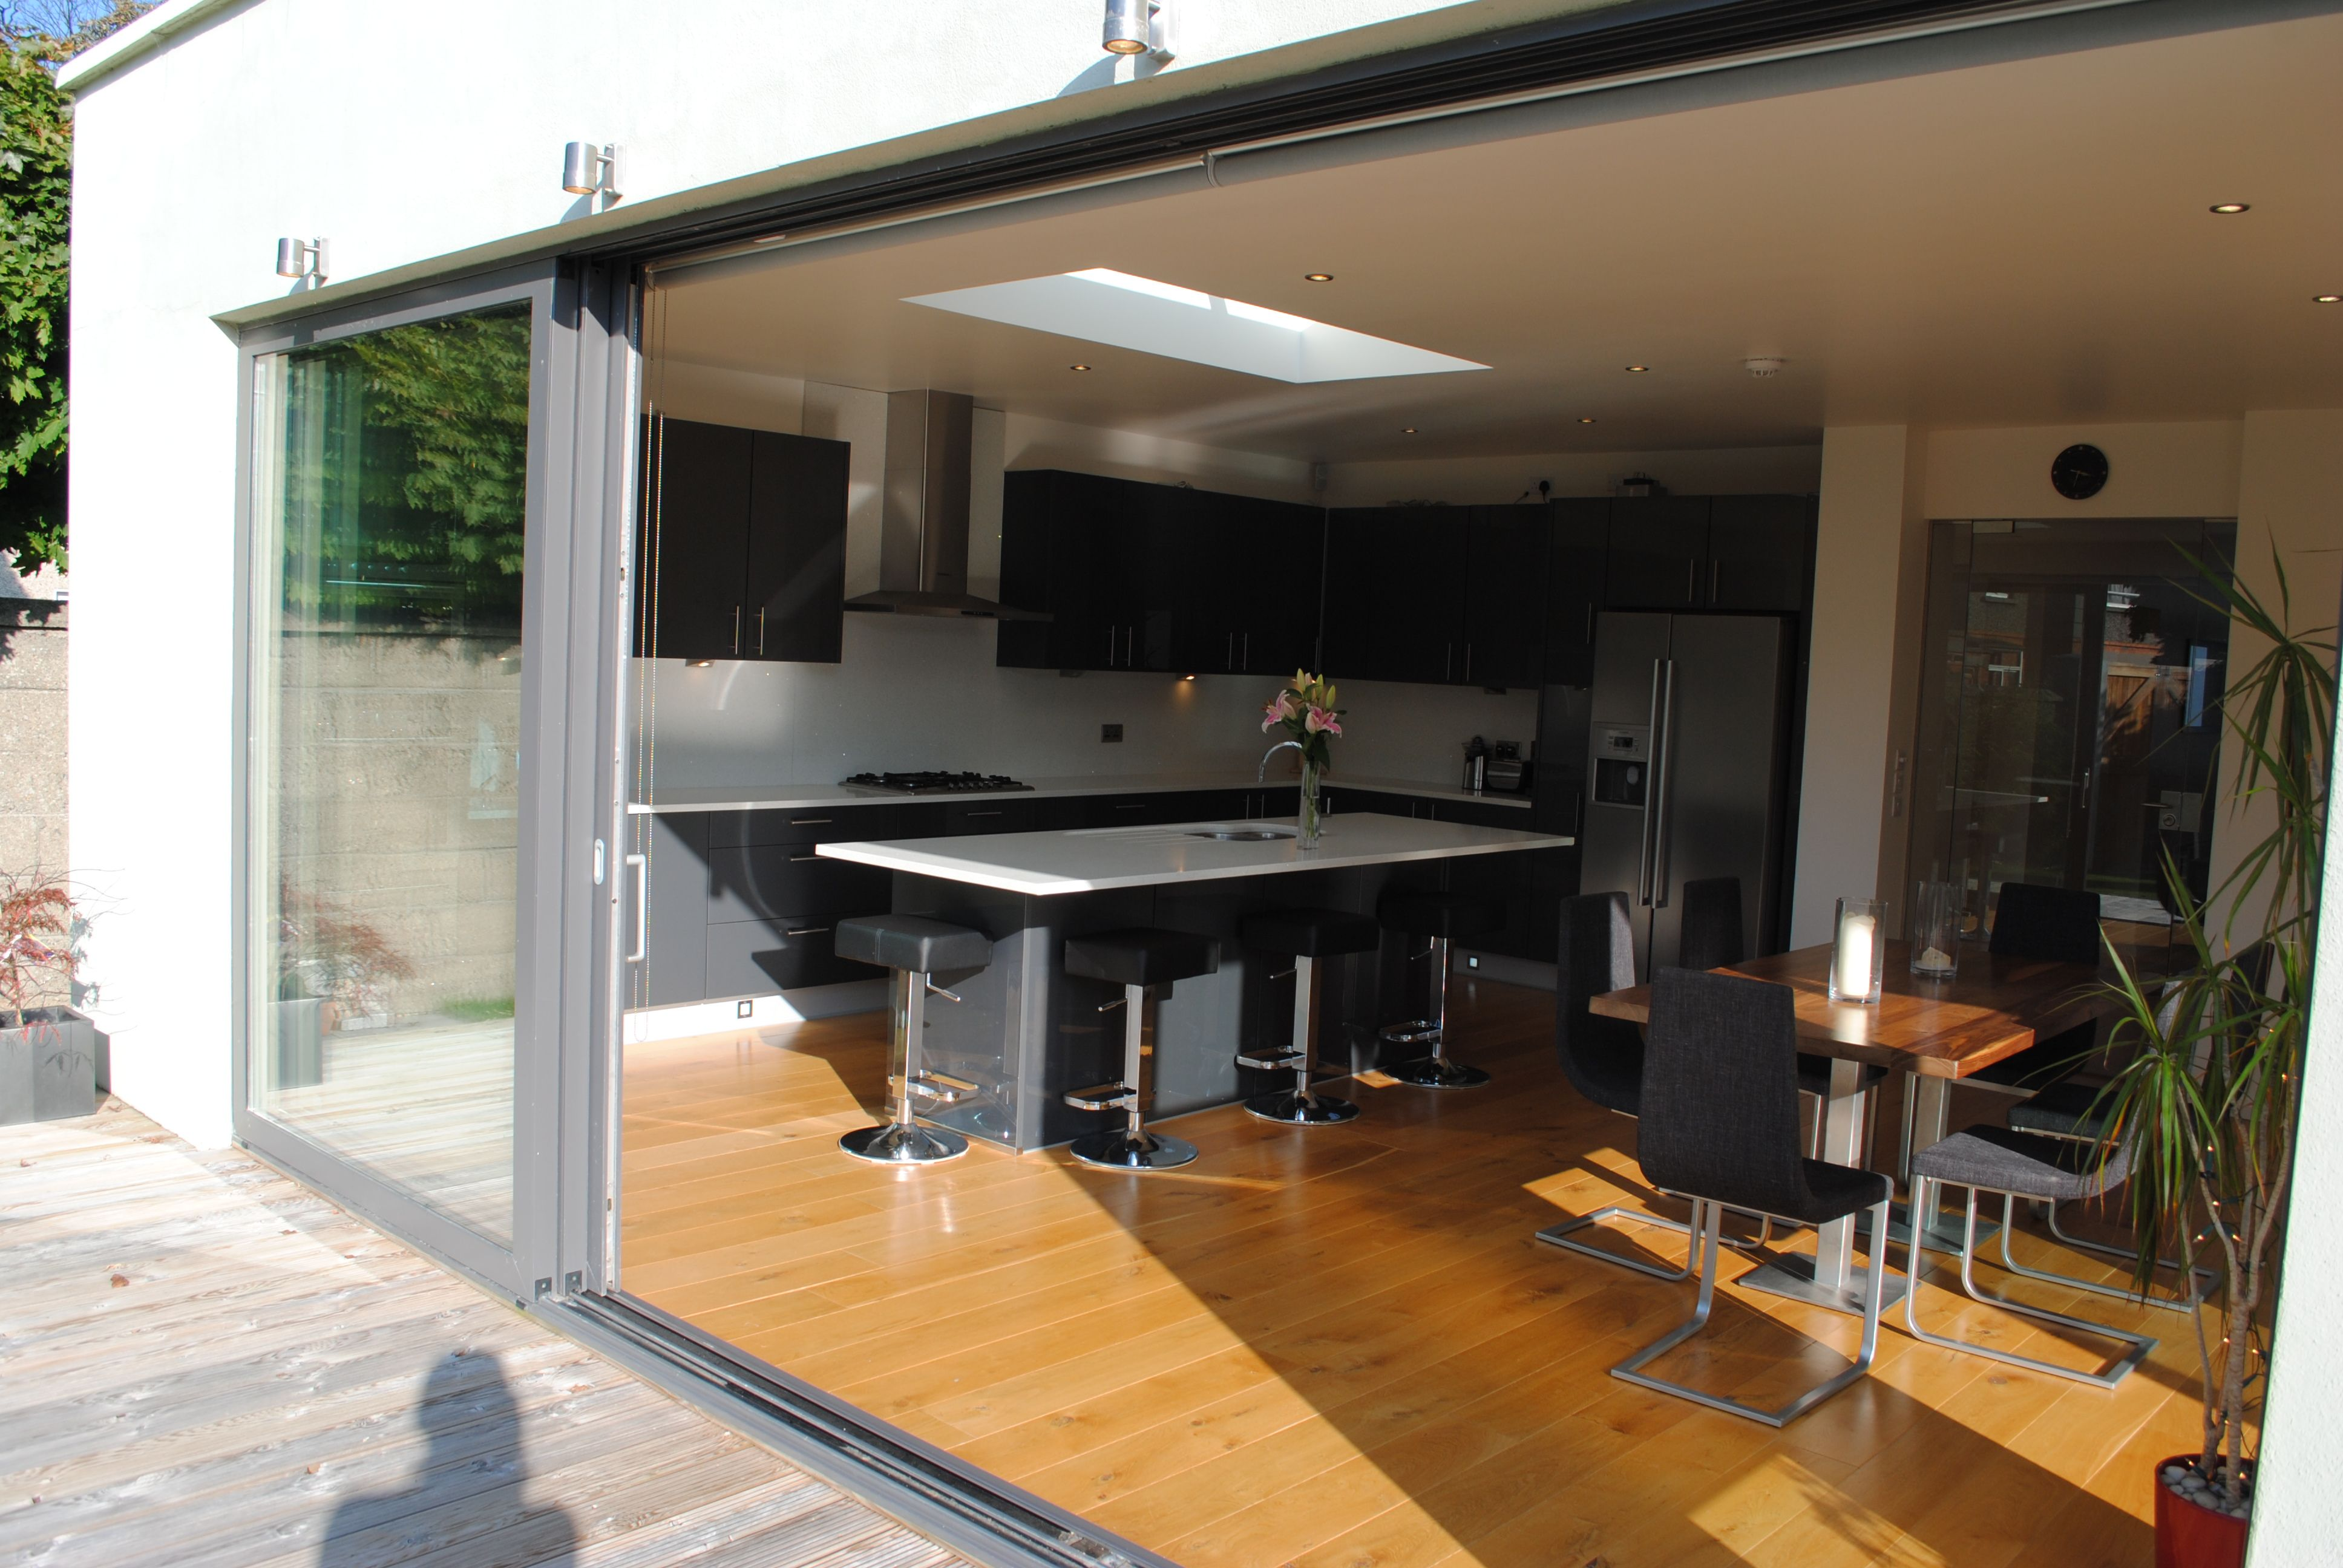 House Extension Remodel Ranelagh Dublin